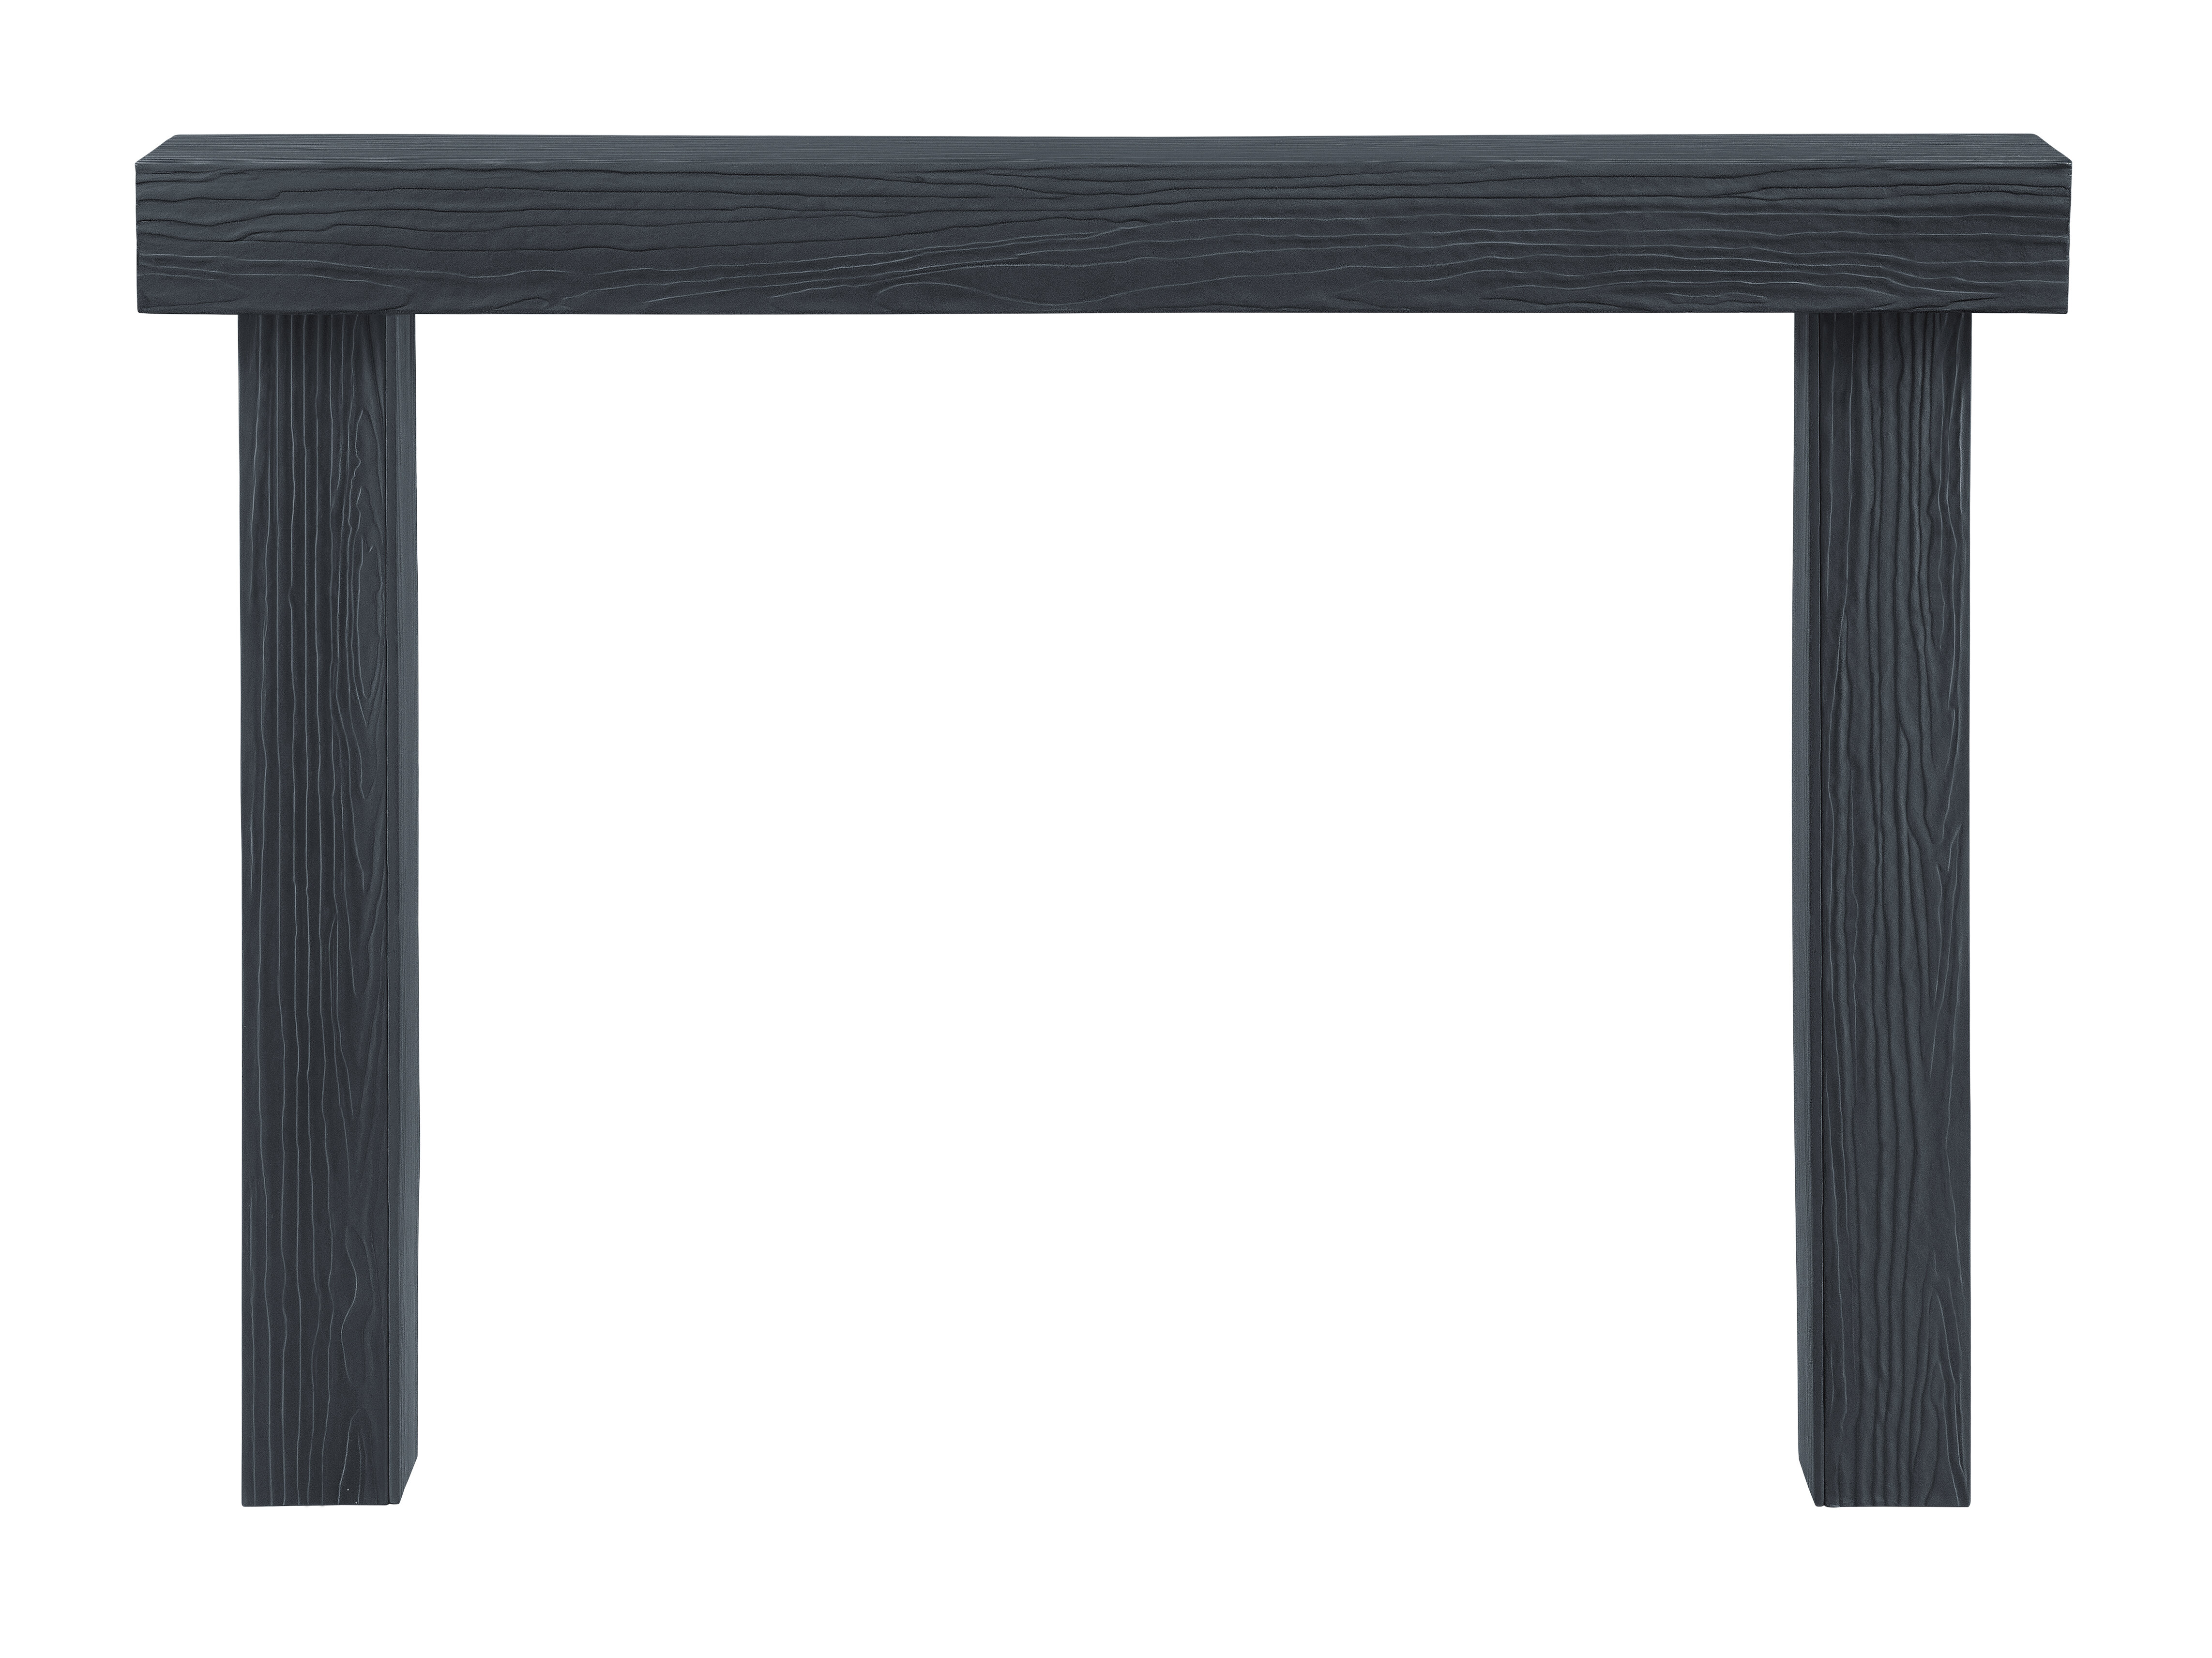 Pearl Mantels Zachary Non Combustible Fireplace Surround Wayfair